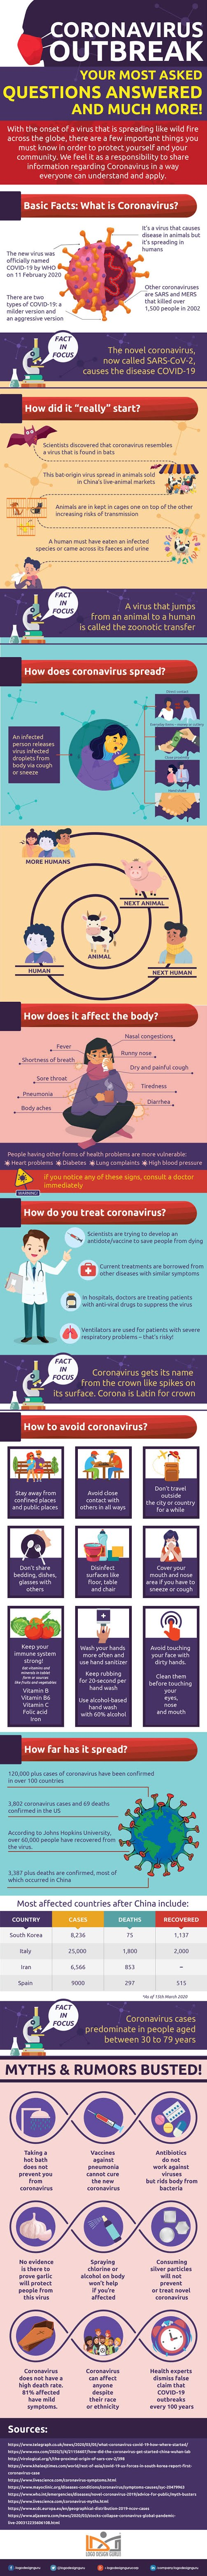 Coronavirus Outbreak: Your Most Asked Questions Answered #infographic